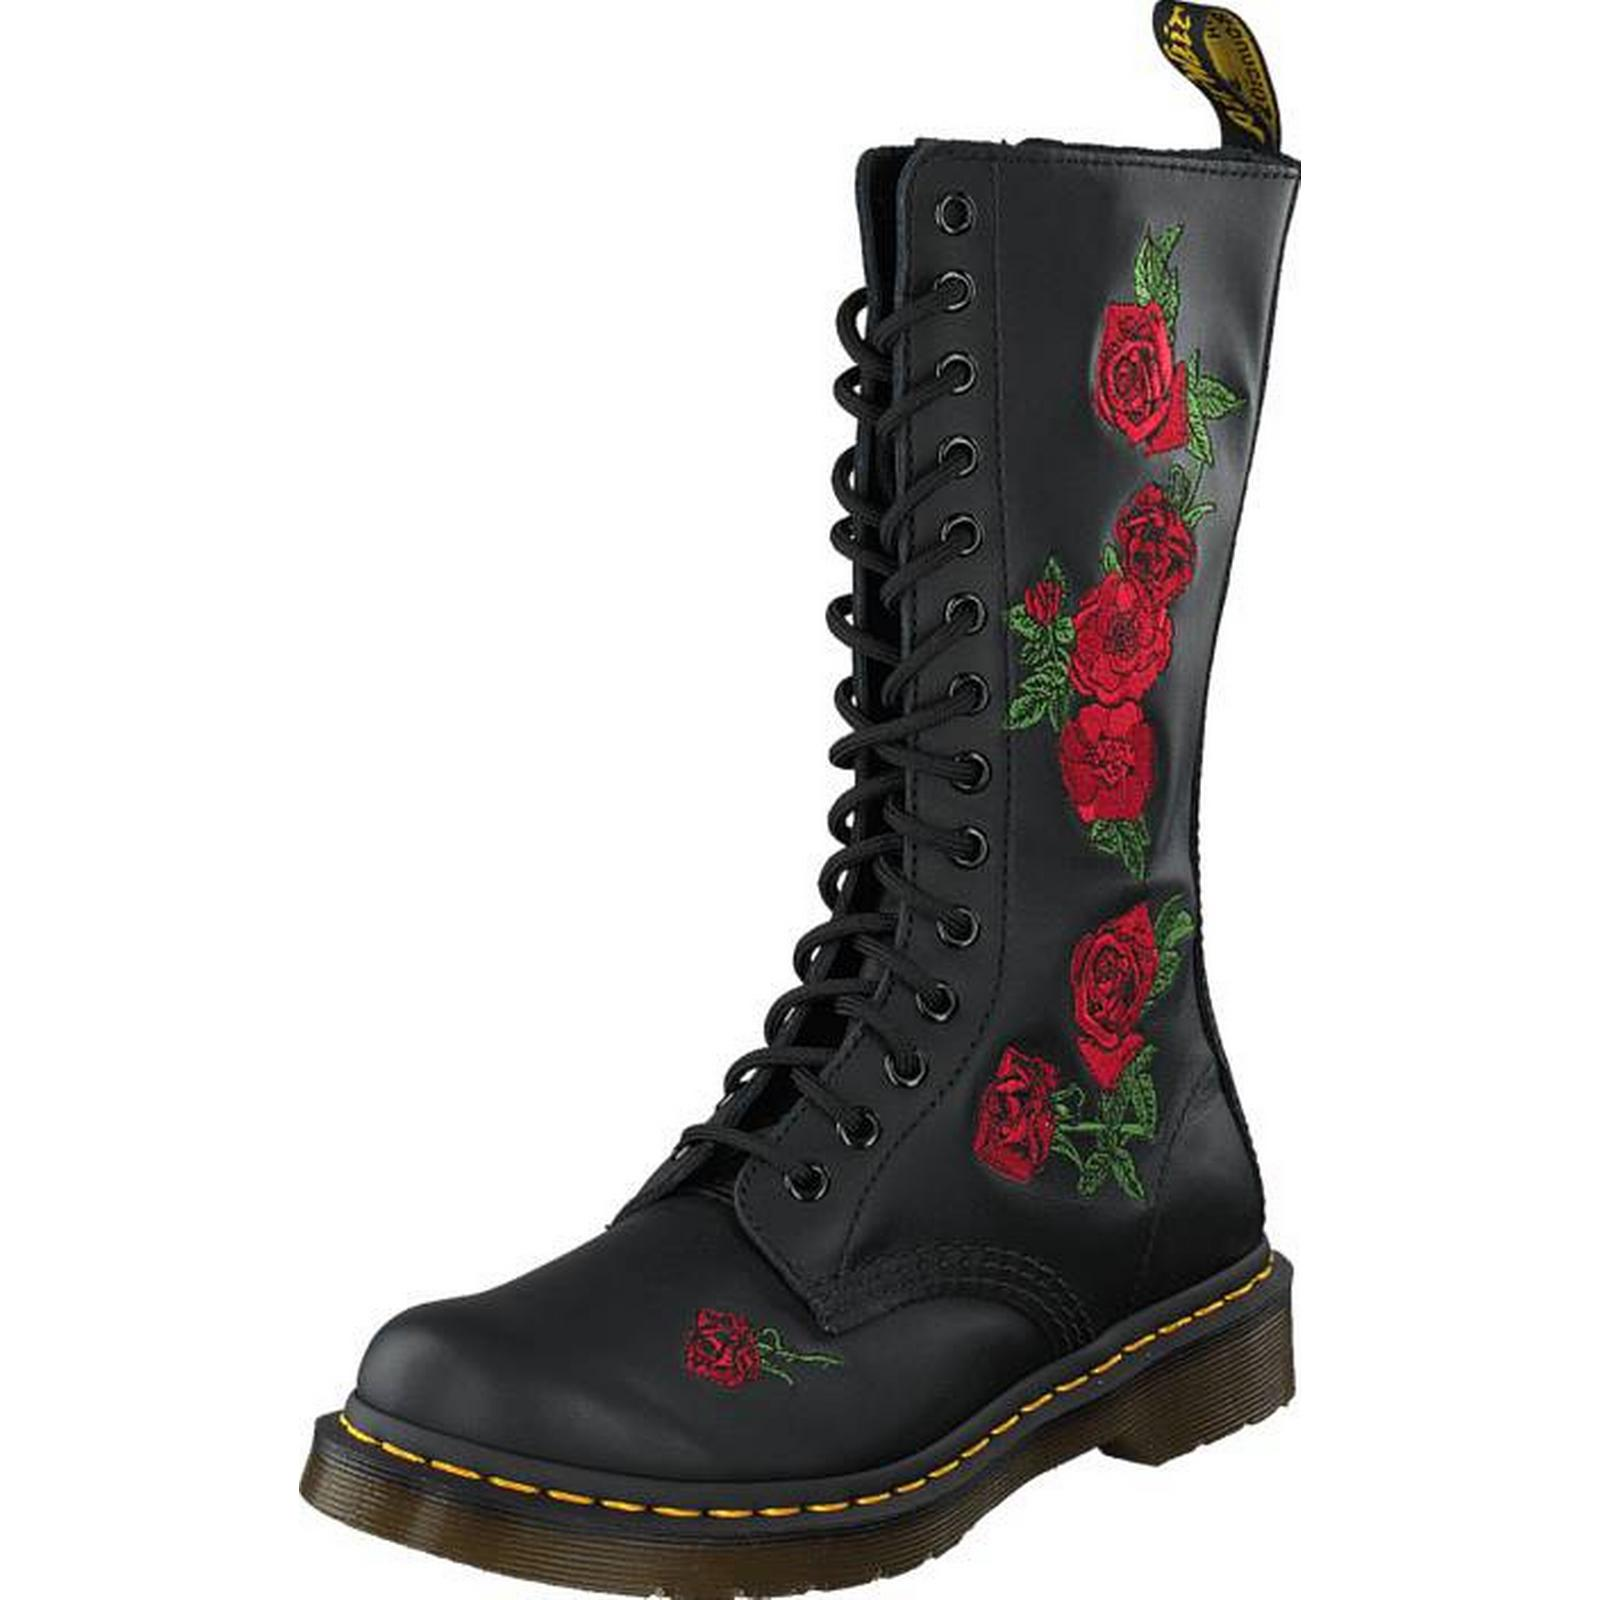 Dr Martens Vonda Black, Black, Vonda Shoes, High boots & Booties, High Boots, Grey, Female, 36 1bbe16